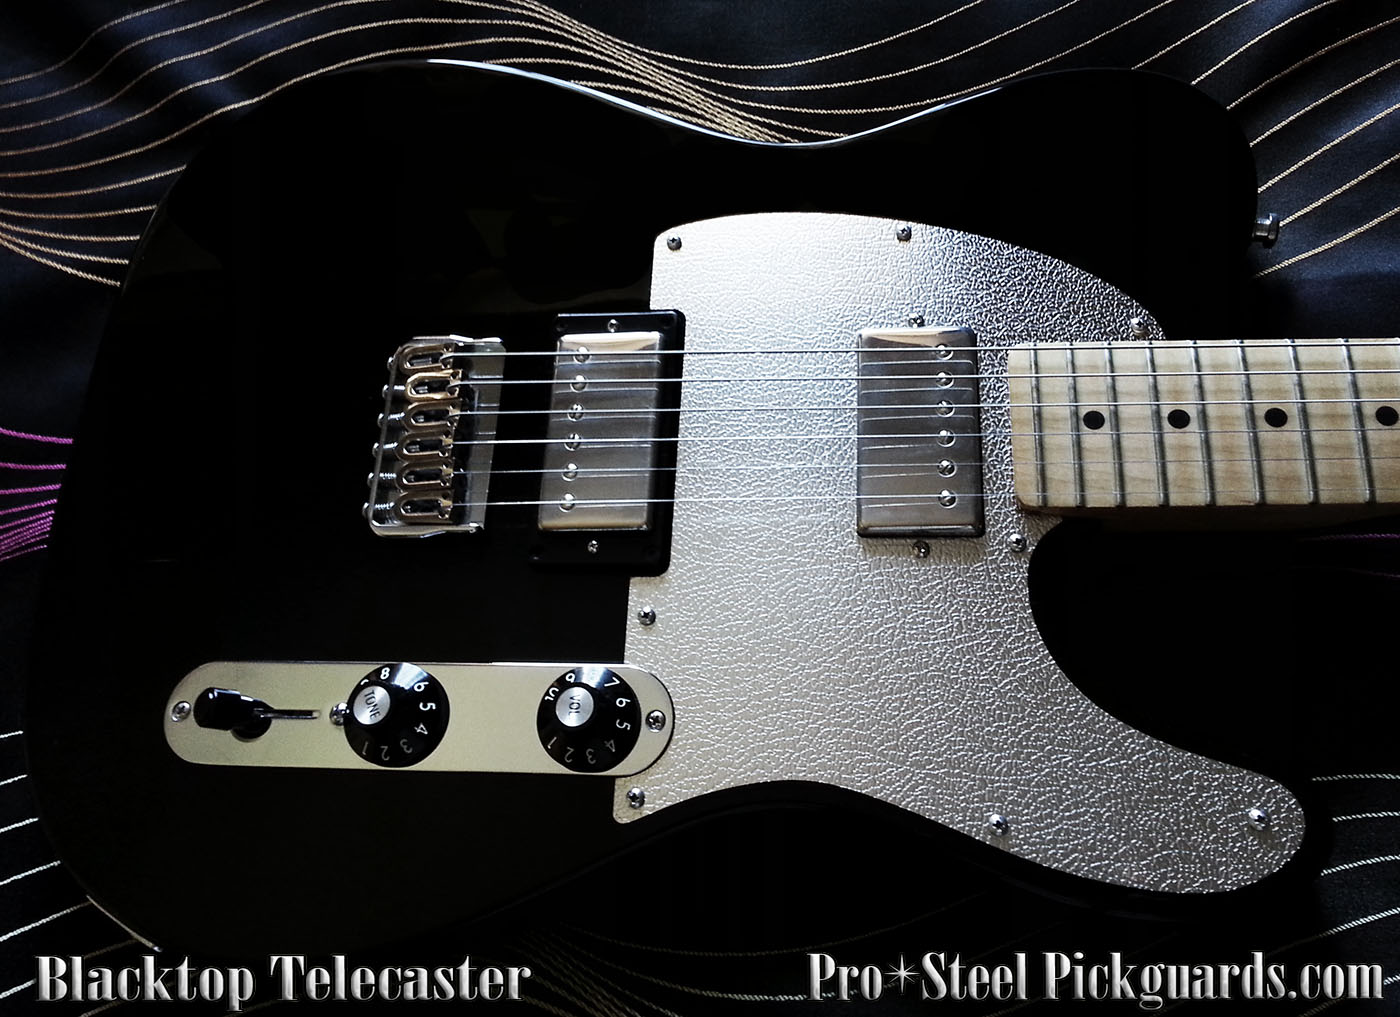 Fender Blacktop Telecaster Wiring Diagram 41 Images Custom 1373180016 Pro Steel Pickguards Tele Buffalo 42d Site Original New Pickguard